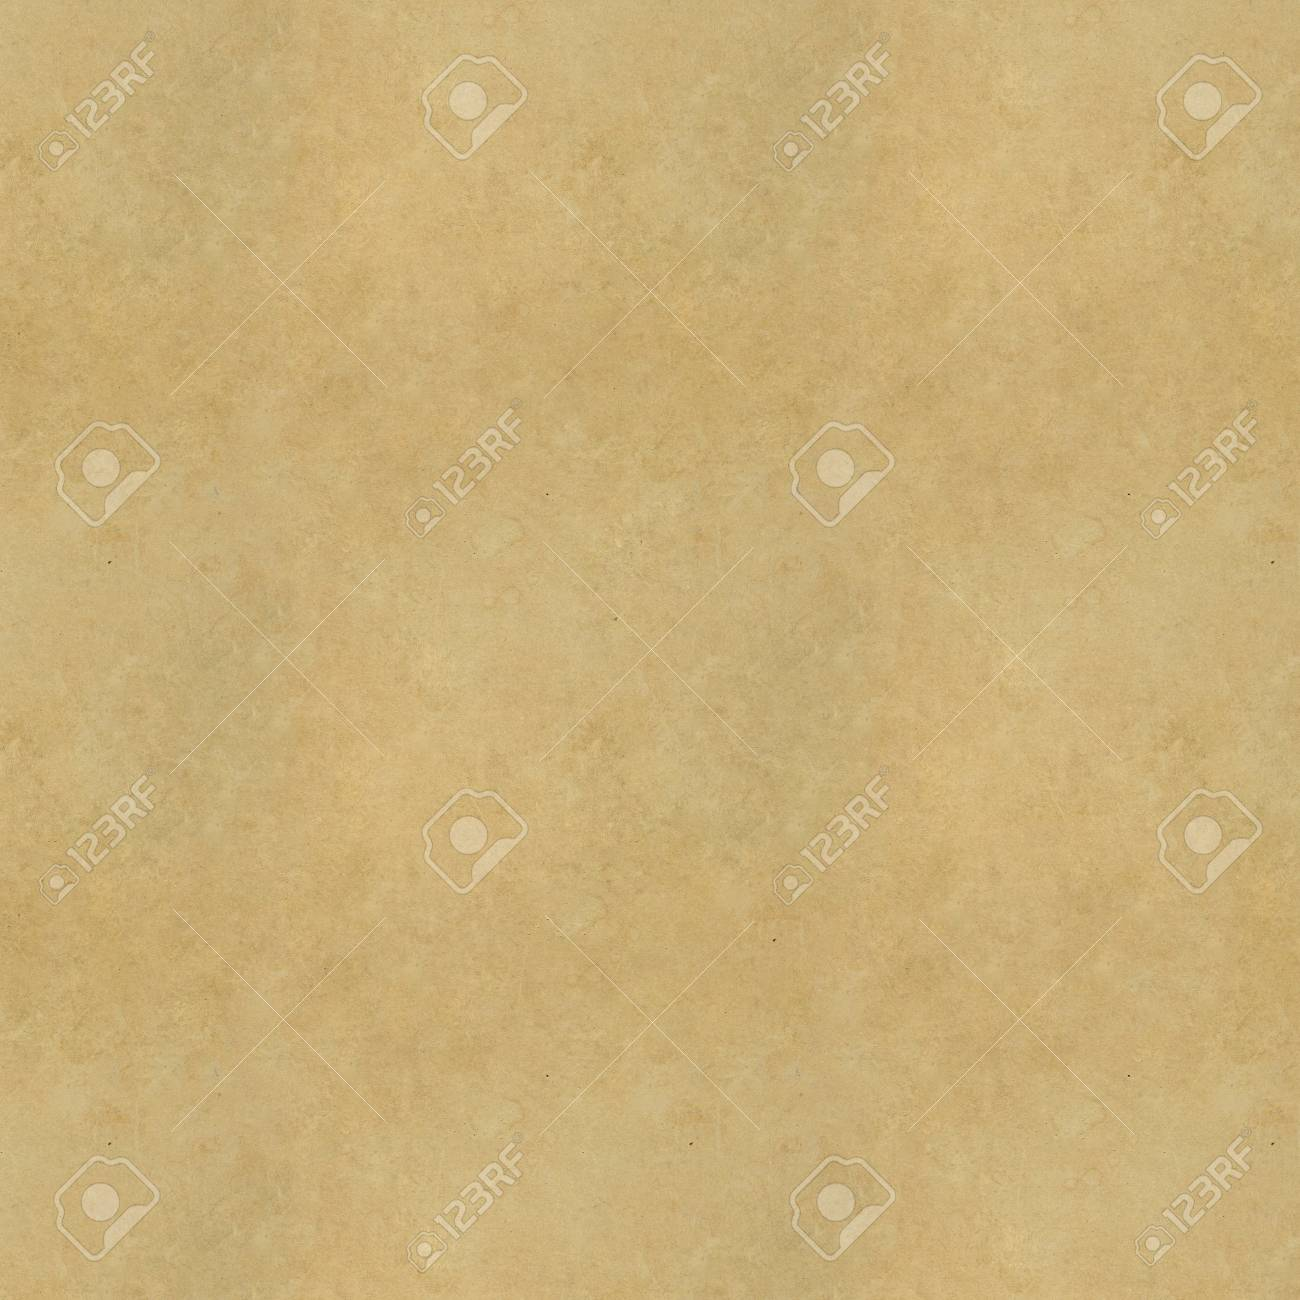 Old Paper Texture Seamless Pattern for vintage background